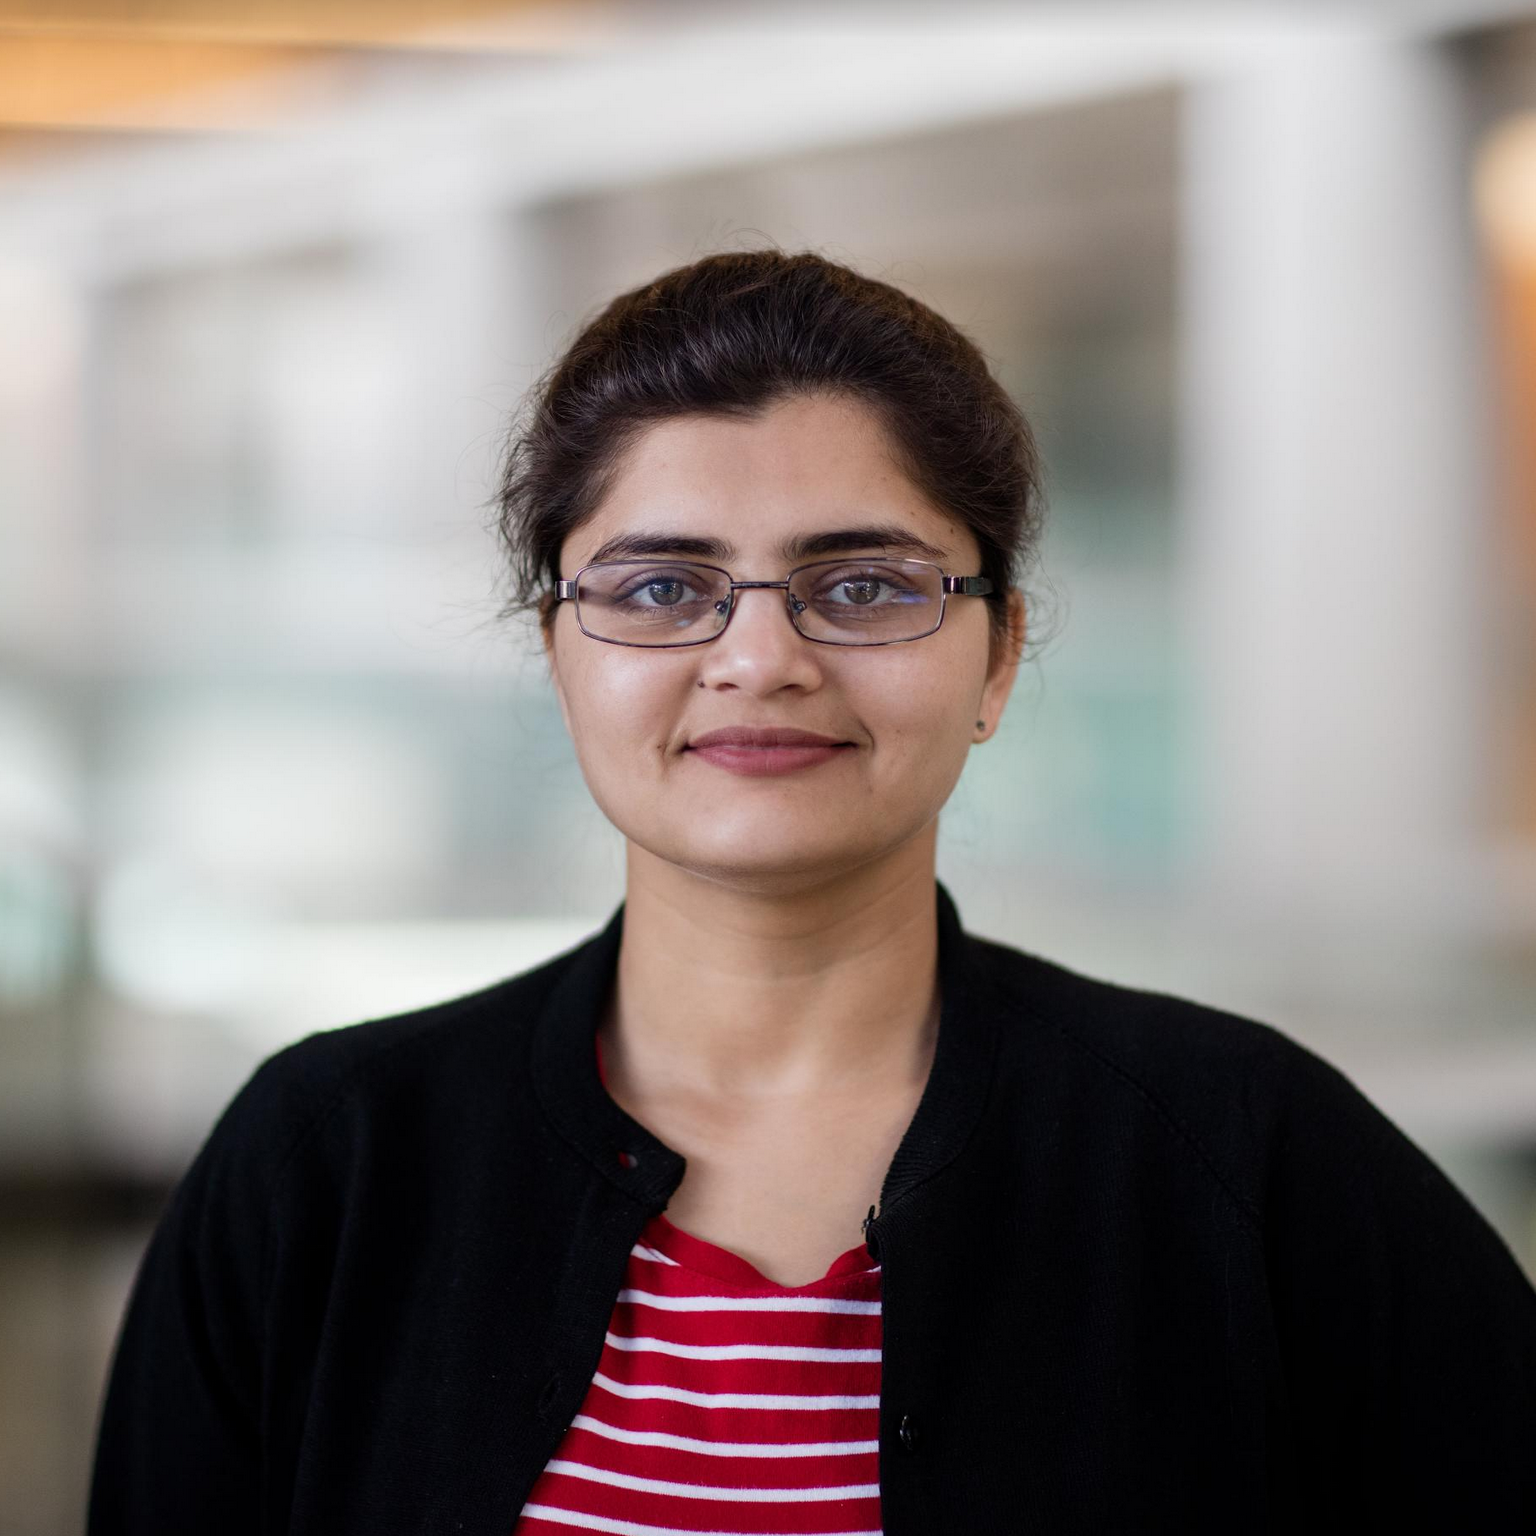 Apoorva Chauhan  HCI Researcher  Doctoral Candidate  Computer Science  Utah State University